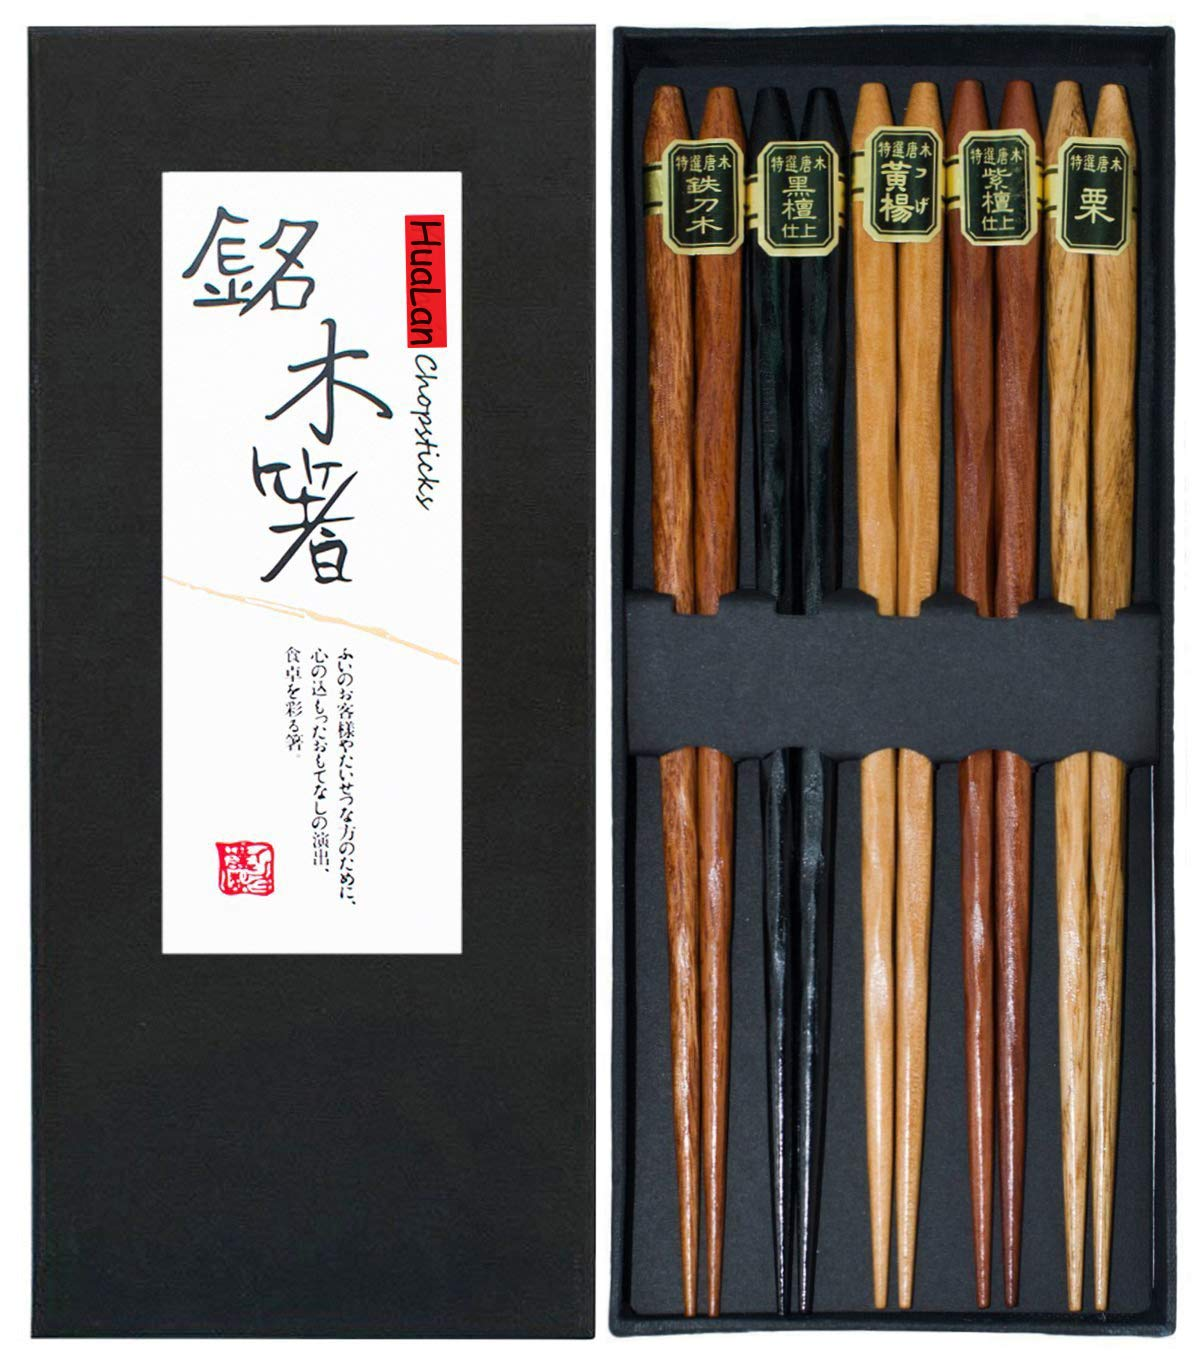 Youmi Japanese Natural Wood Chopstick Set Reusable Classic Style Chopsticks 5 Pairs Gift Set